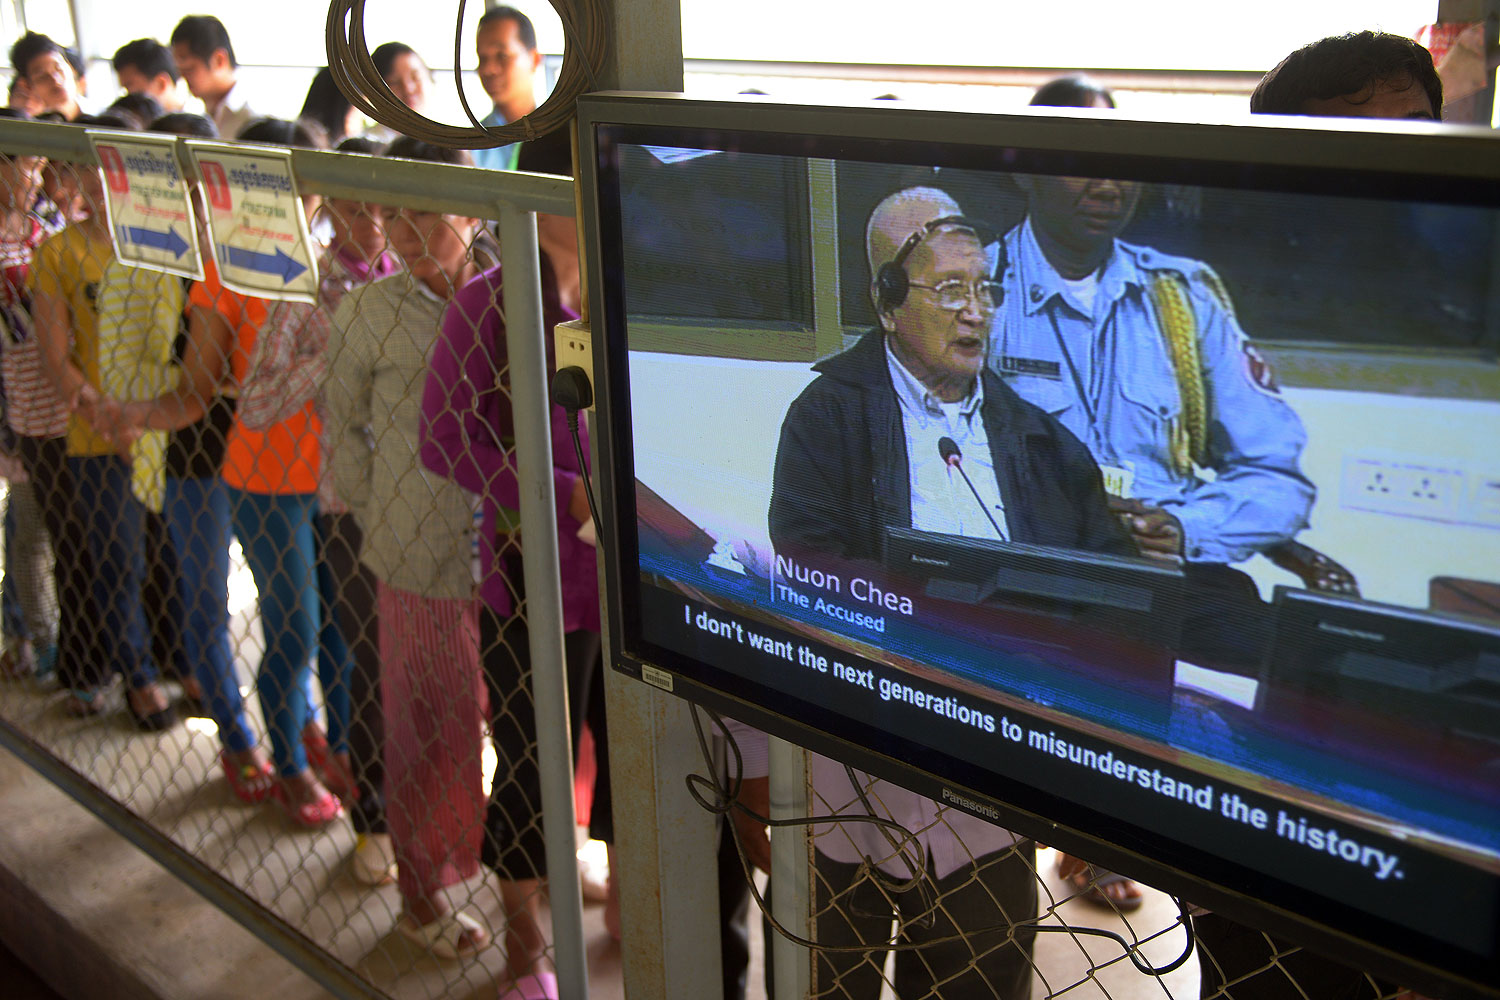 Former Cambodian Khmer Rouge leader  Brother Number Two  Nuon Chea is seen on a television screen (R) as people (L) line up to attend the trial of former Khmer Rouge leaders at the Extraordinary Chamber in the Courts of Cambodia (ECCC) in Phnom Penh in Oct. 2013